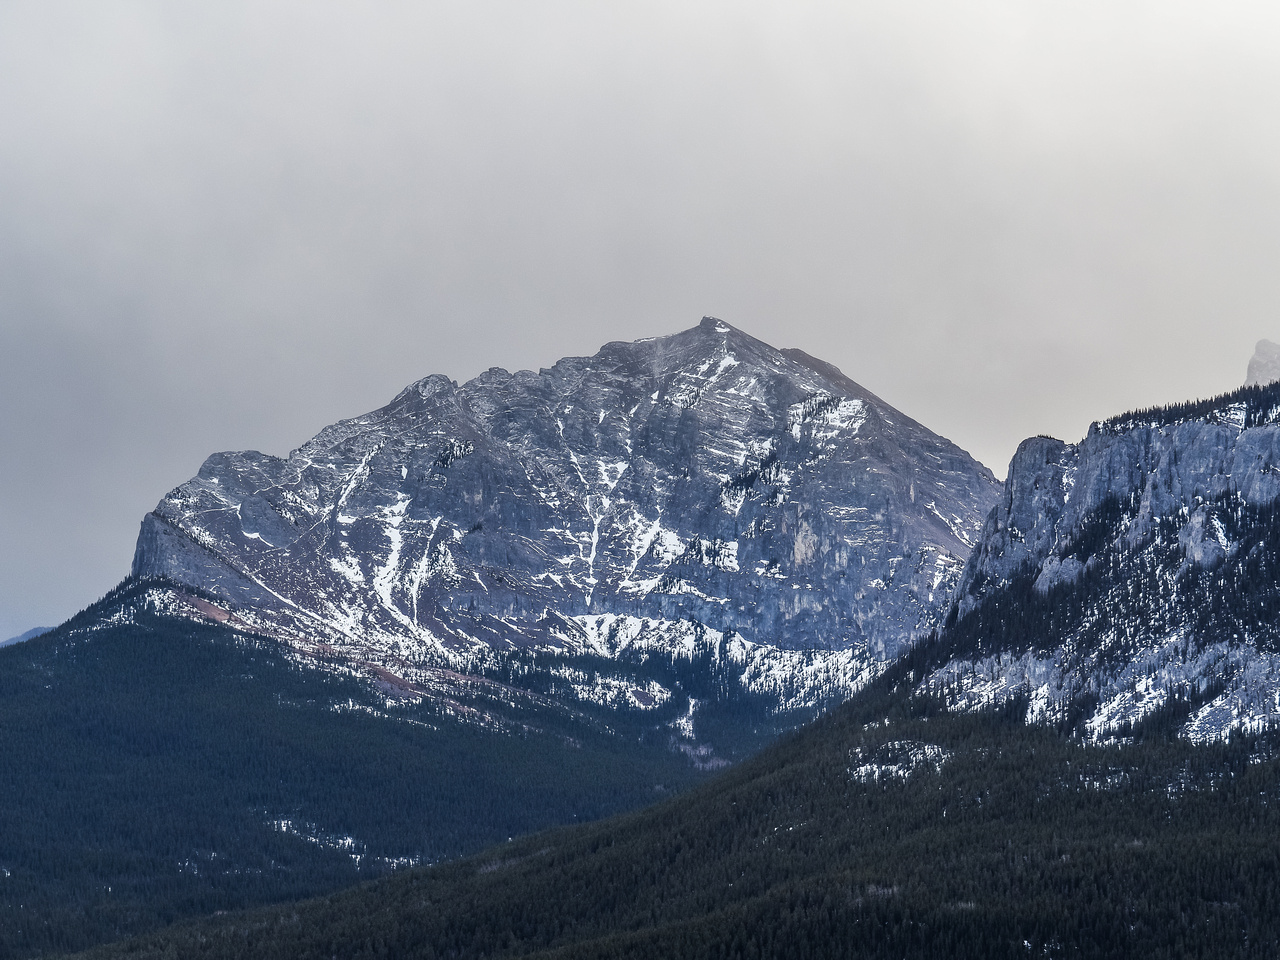 Telephoto of the north side of Yamnuska, note all the scramble trails up to the summit from the left.